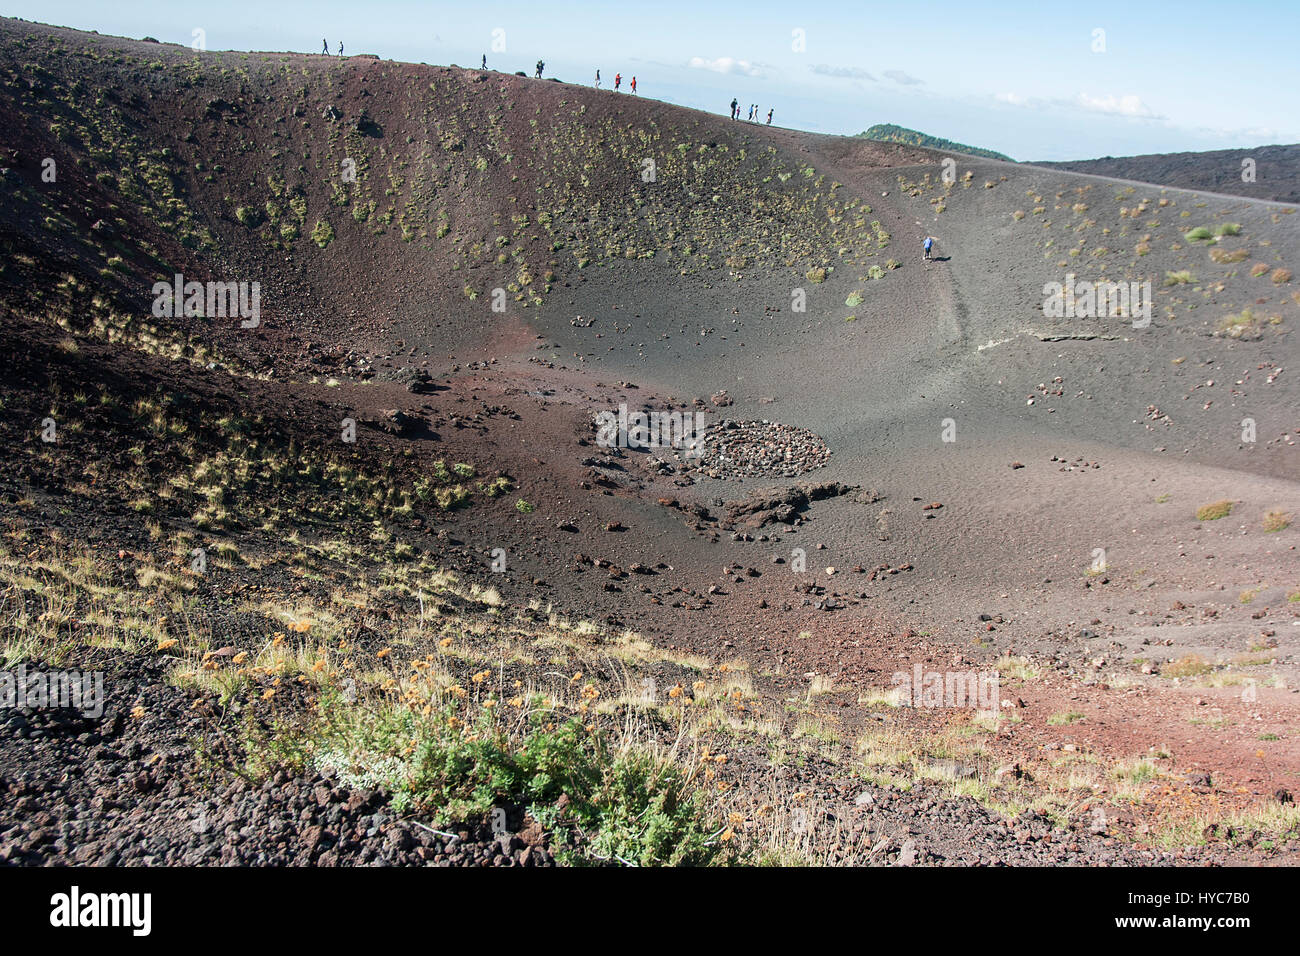 A crater on Mount Etna, Sicily, with sightseers on distant rim - Stock Image